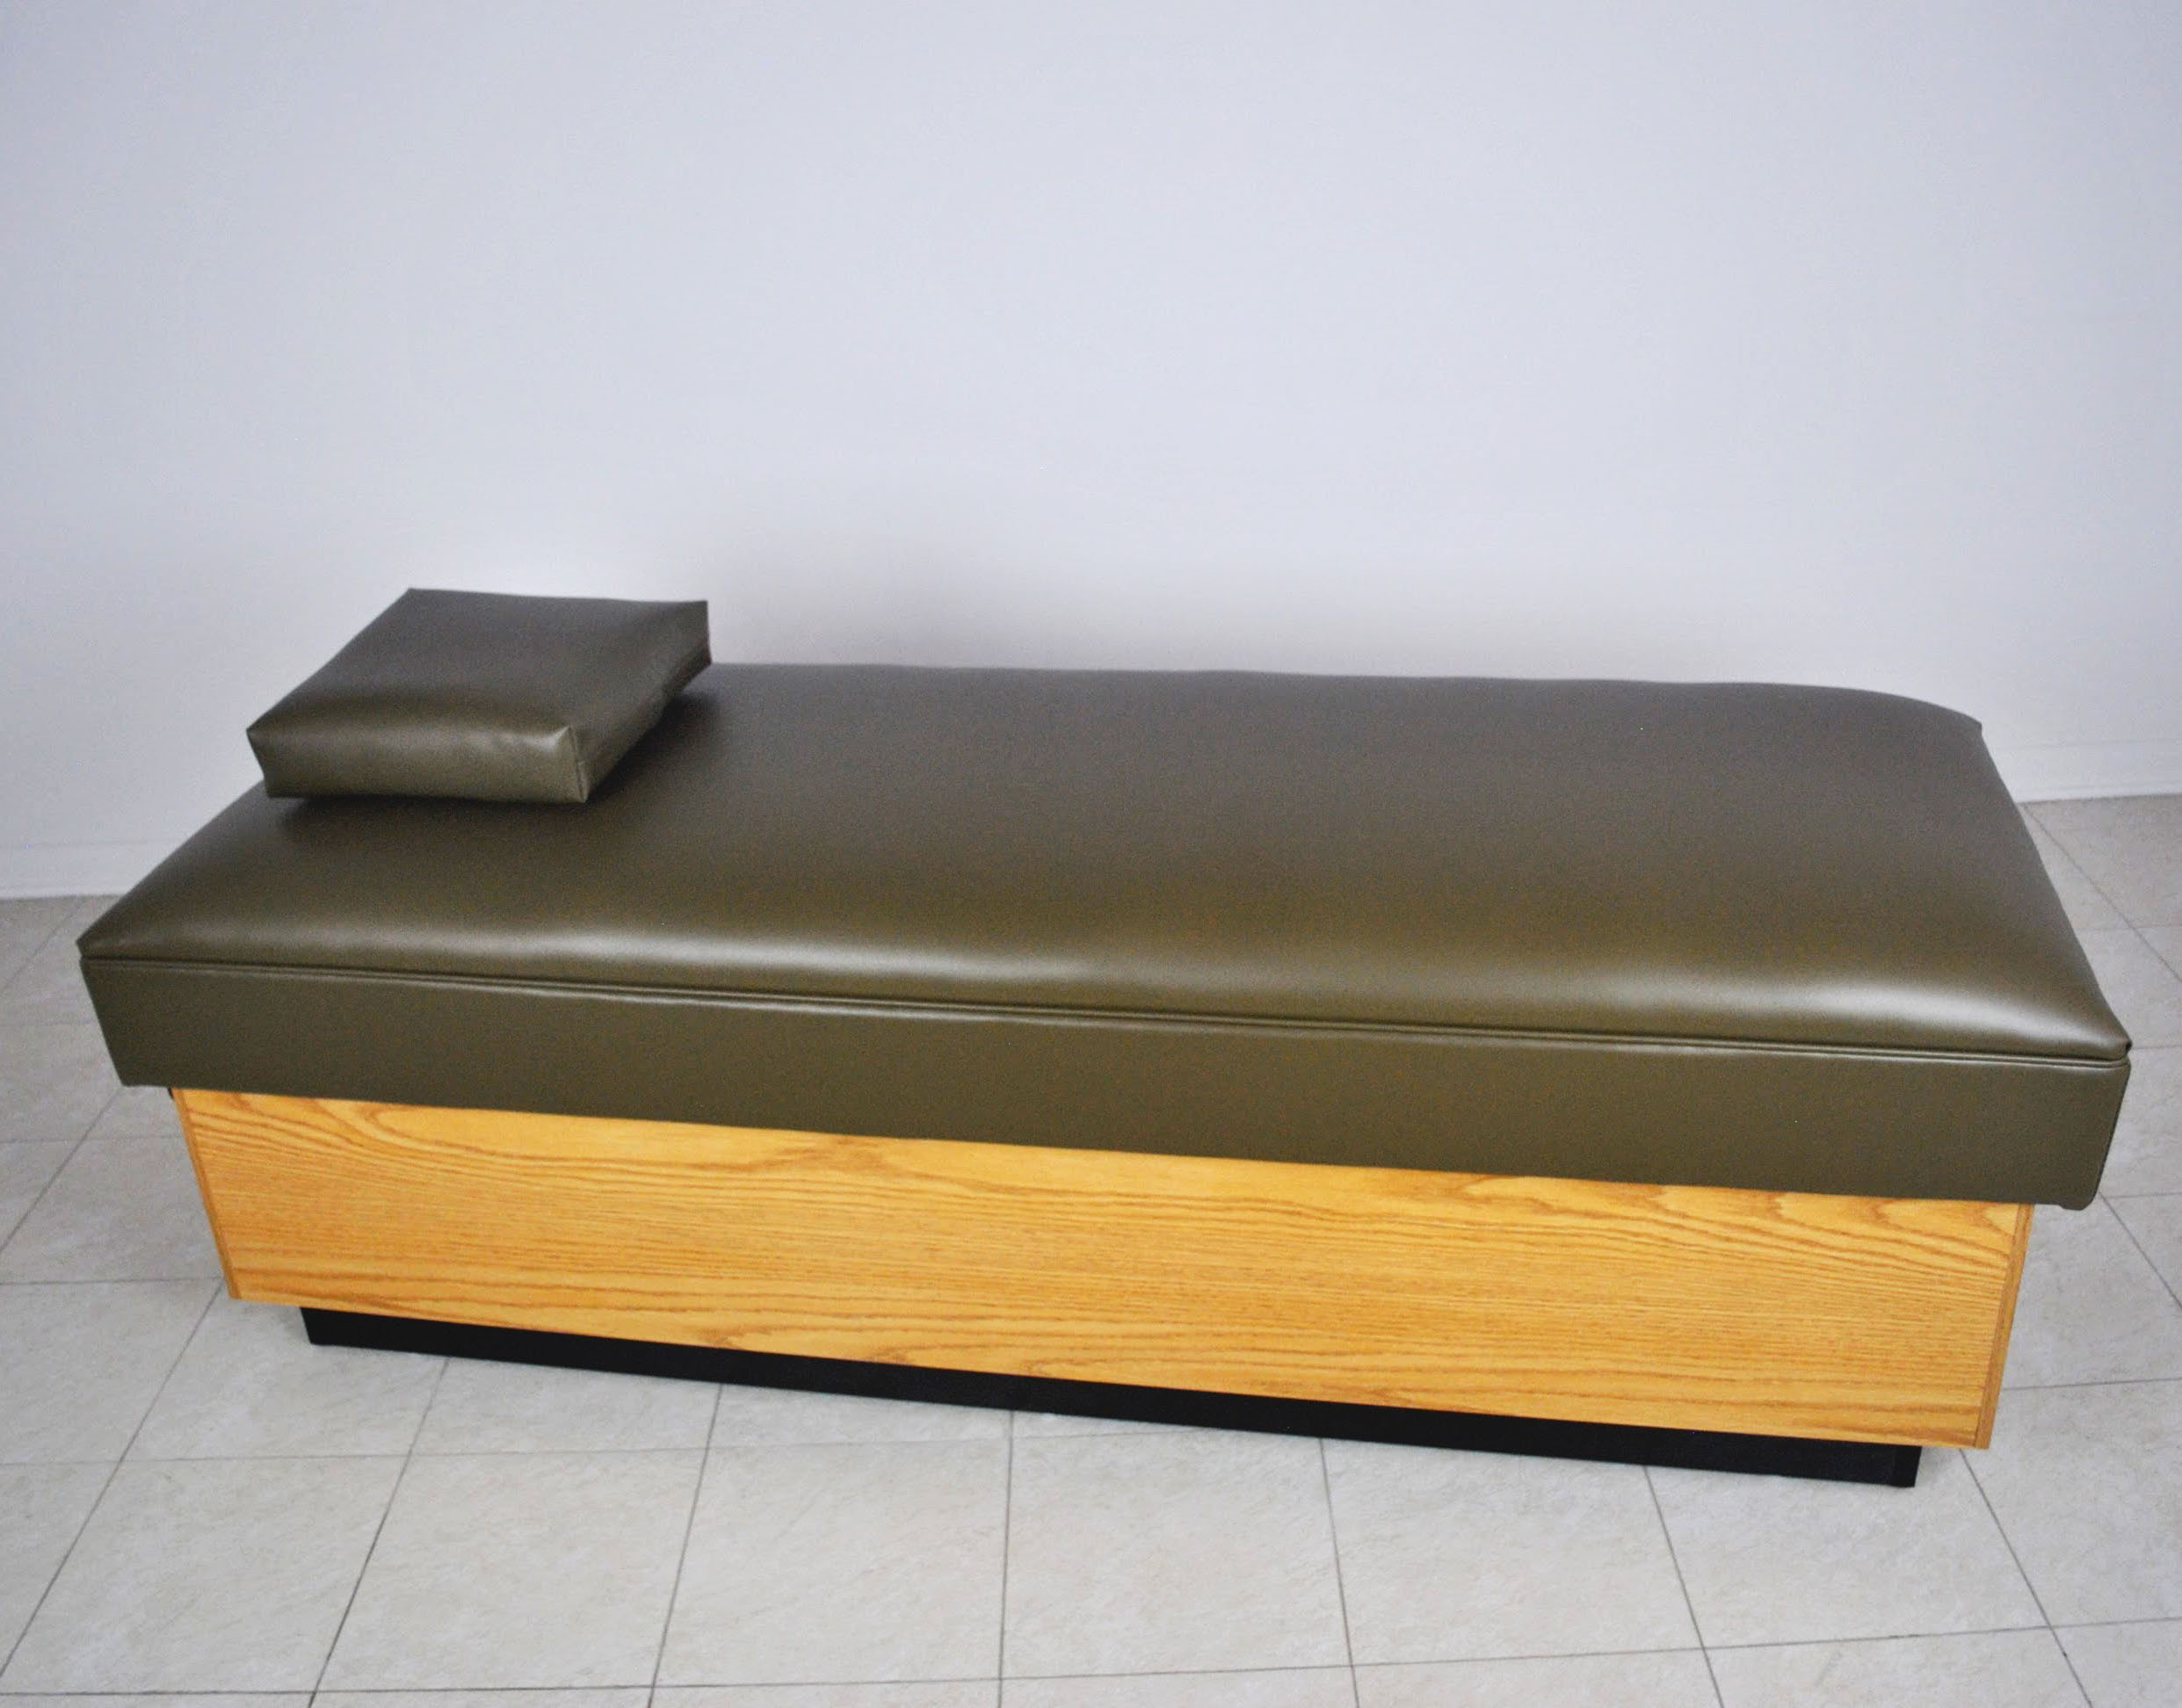 Swell Standard Recovery Couch Wmc Inc Manufacturing Source Short Links Chair Design For Home Short Linksinfo